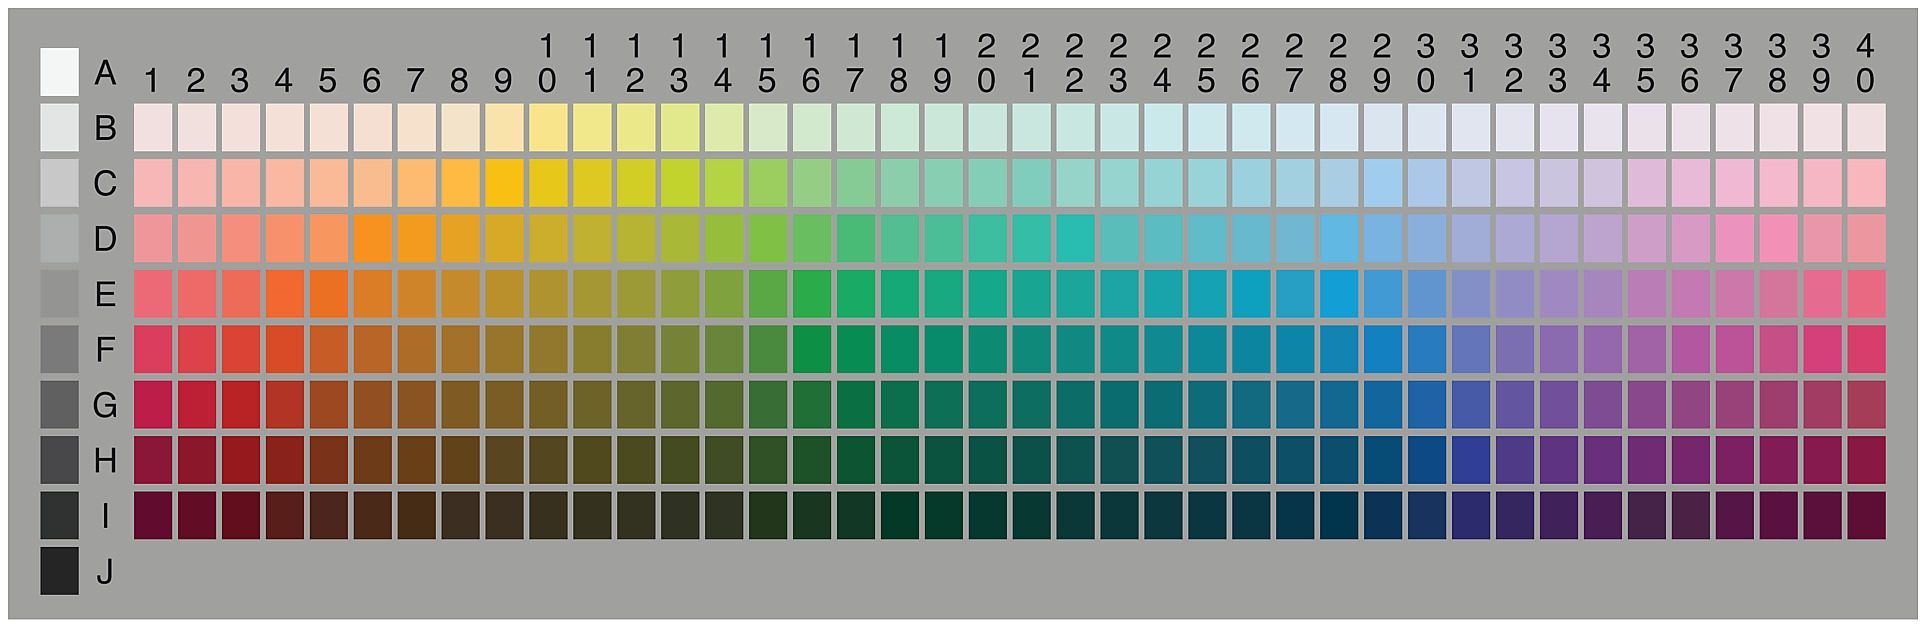 Munsell color chart munsell soil color chart gilson company inc hd image of the munsell color chart as used by the world color survey munsell soil color charts nvjuhfo Gallery